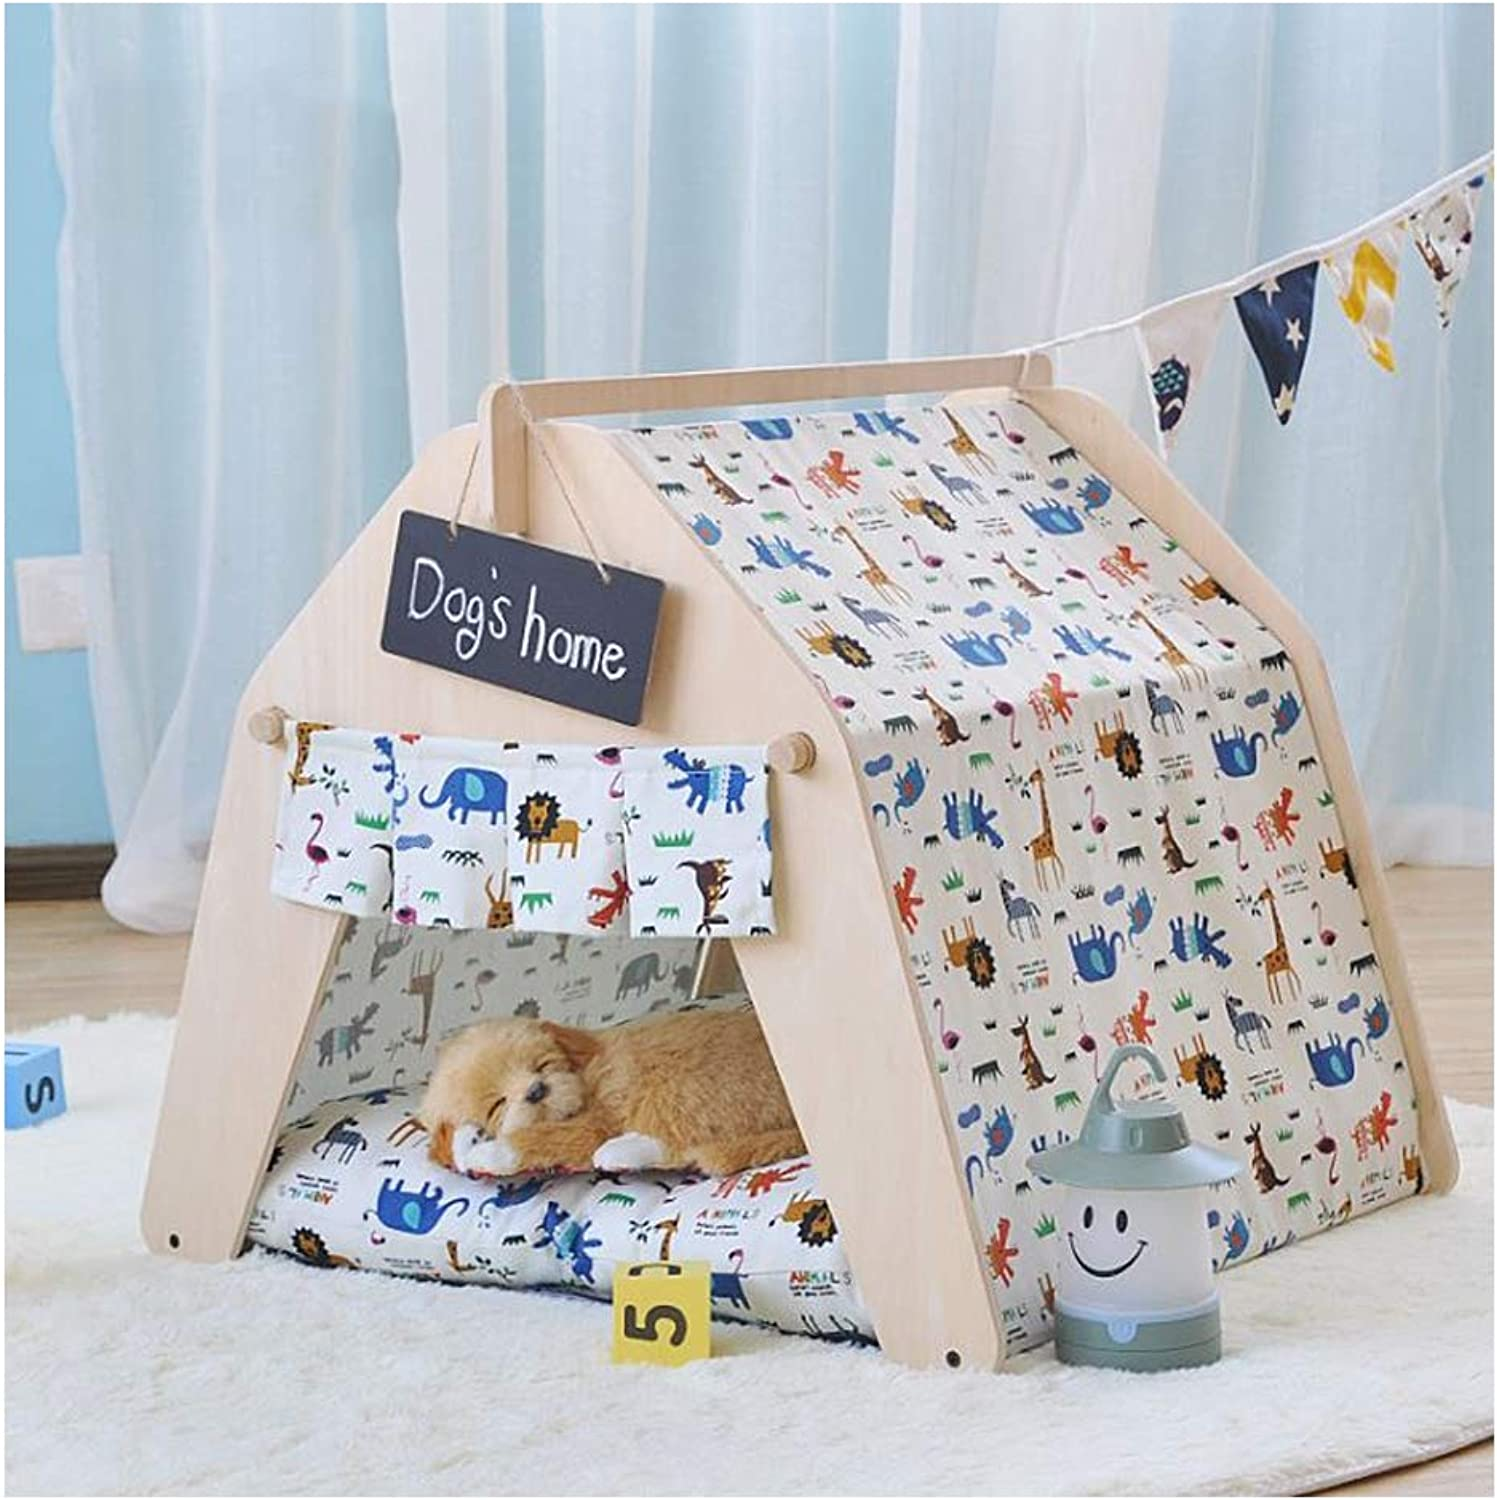 GDDYQ Pet Sleeping Tent Cat Dog Indoor Shack Game House Removable Cleaning With Small Blackboard,Tent,S